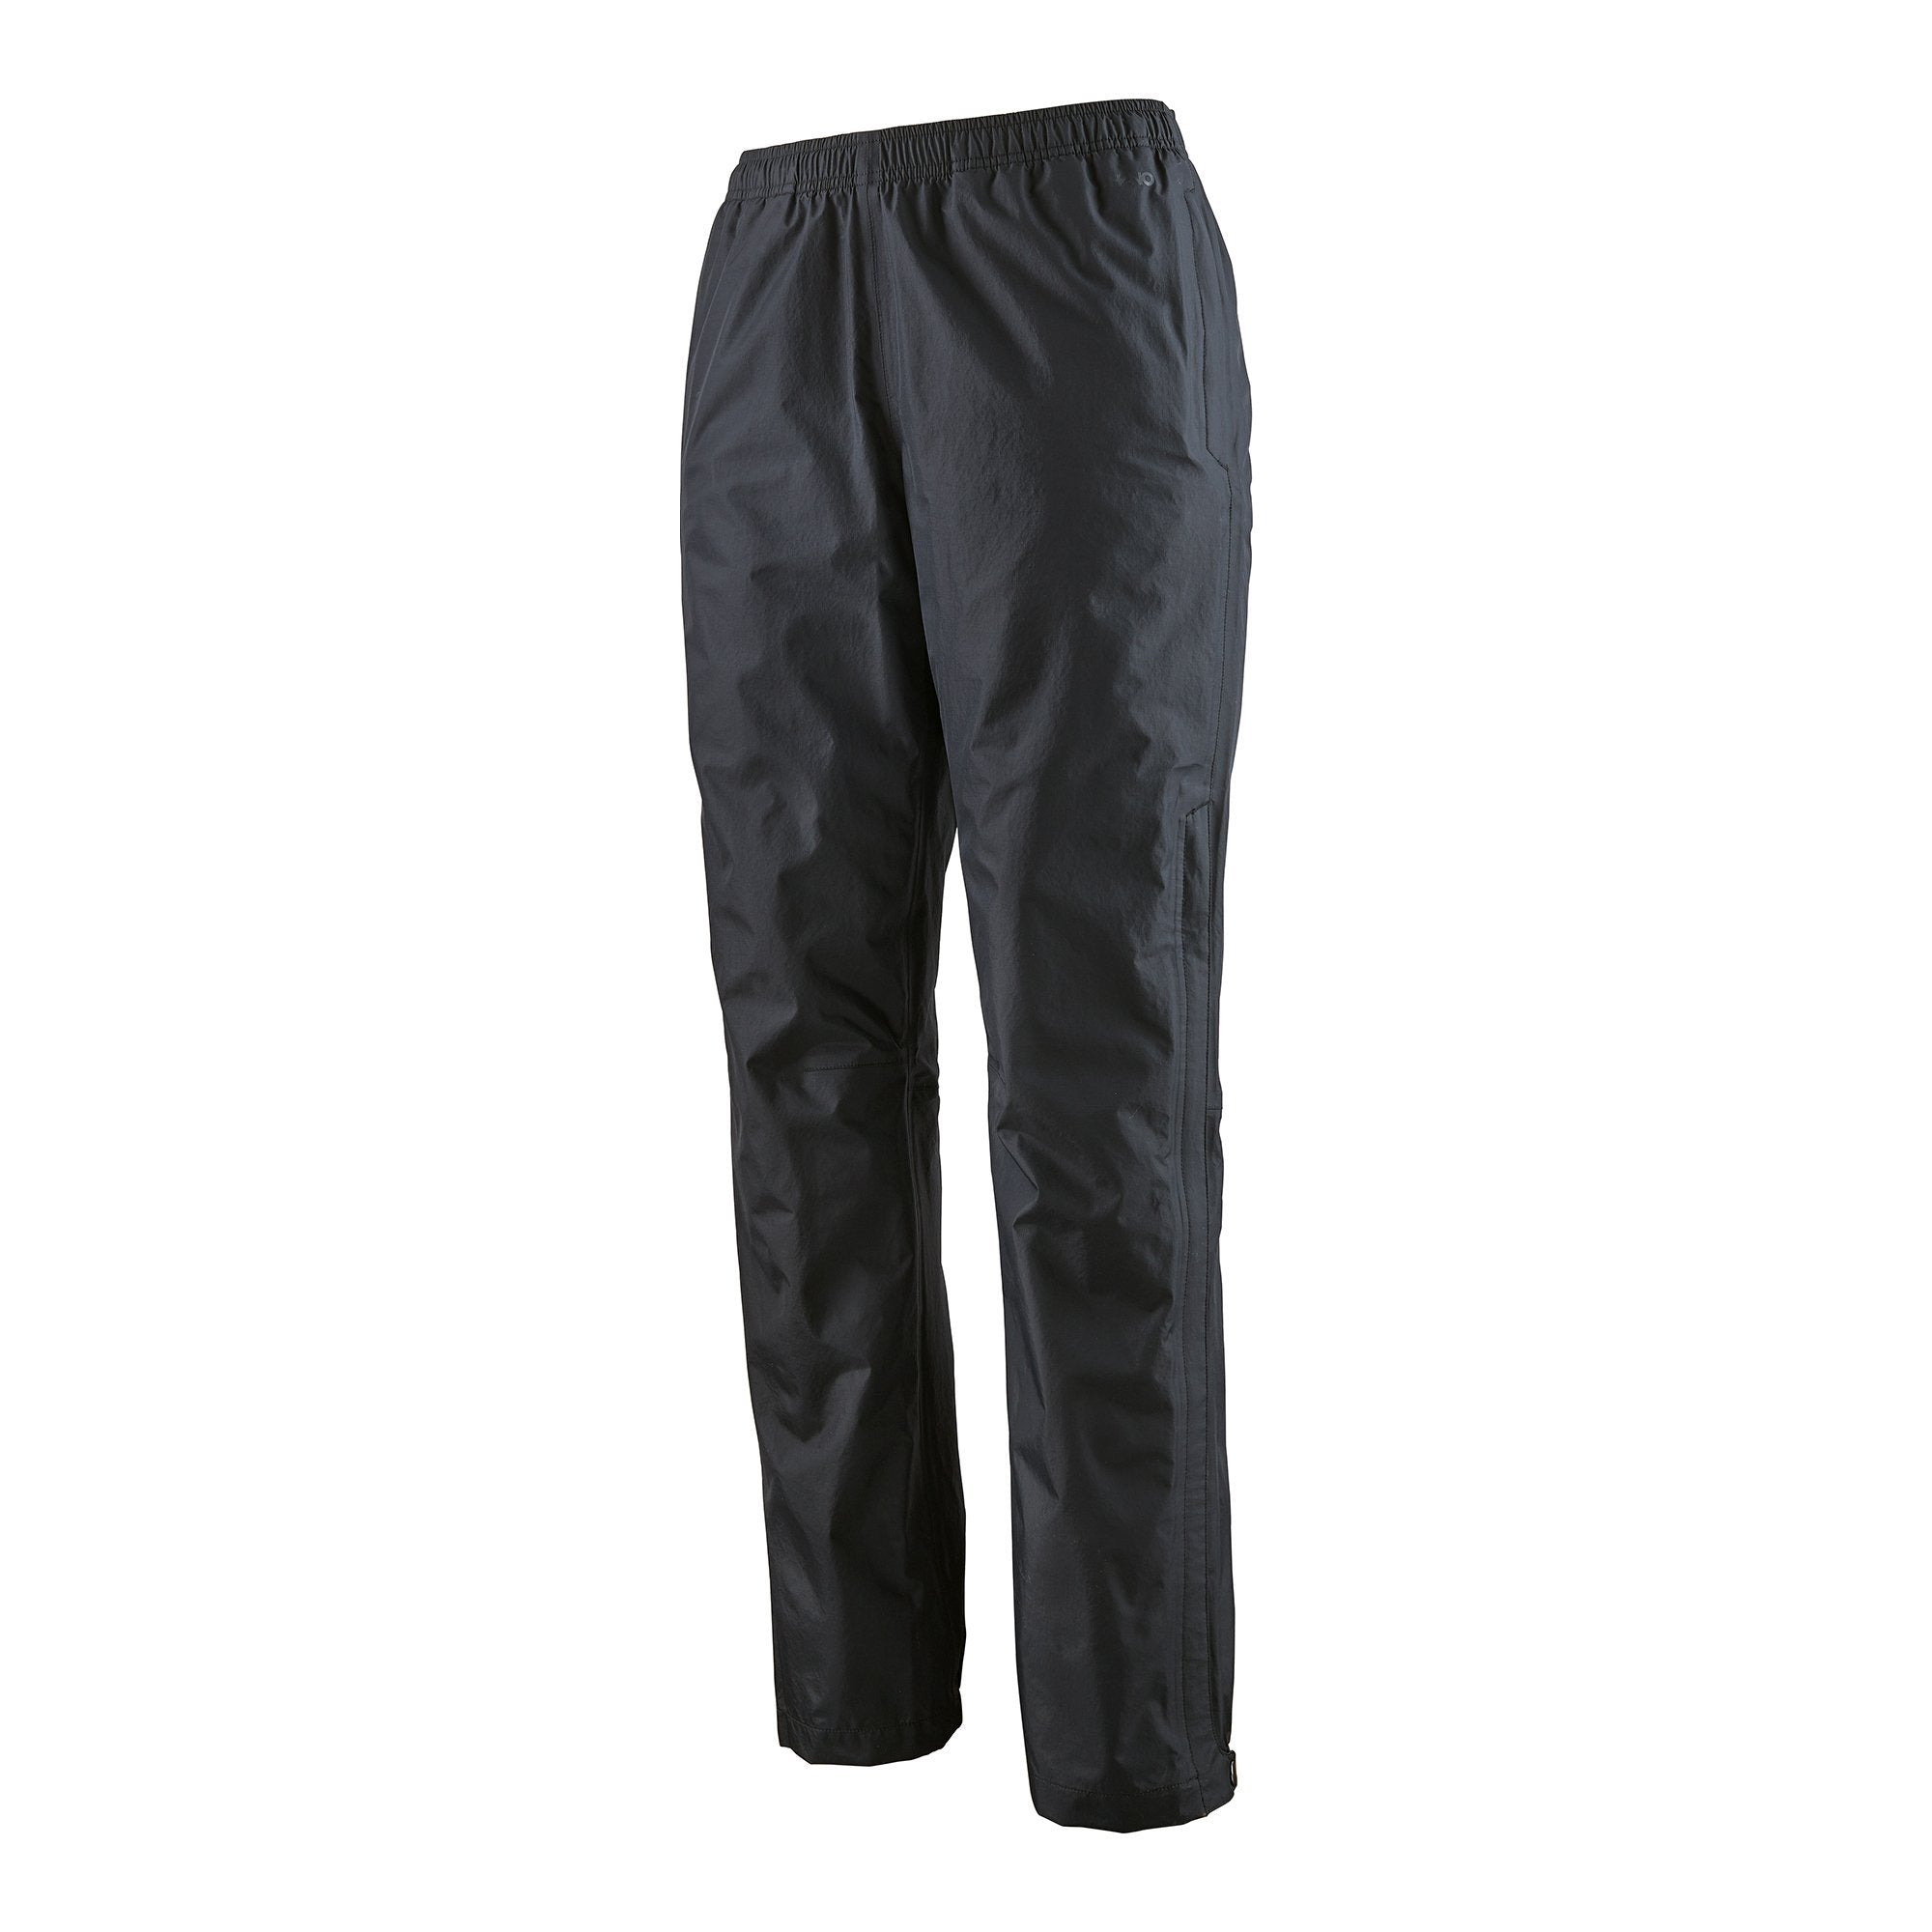 Torrentshell 3L Pants - Black - Dam - Vindpinad